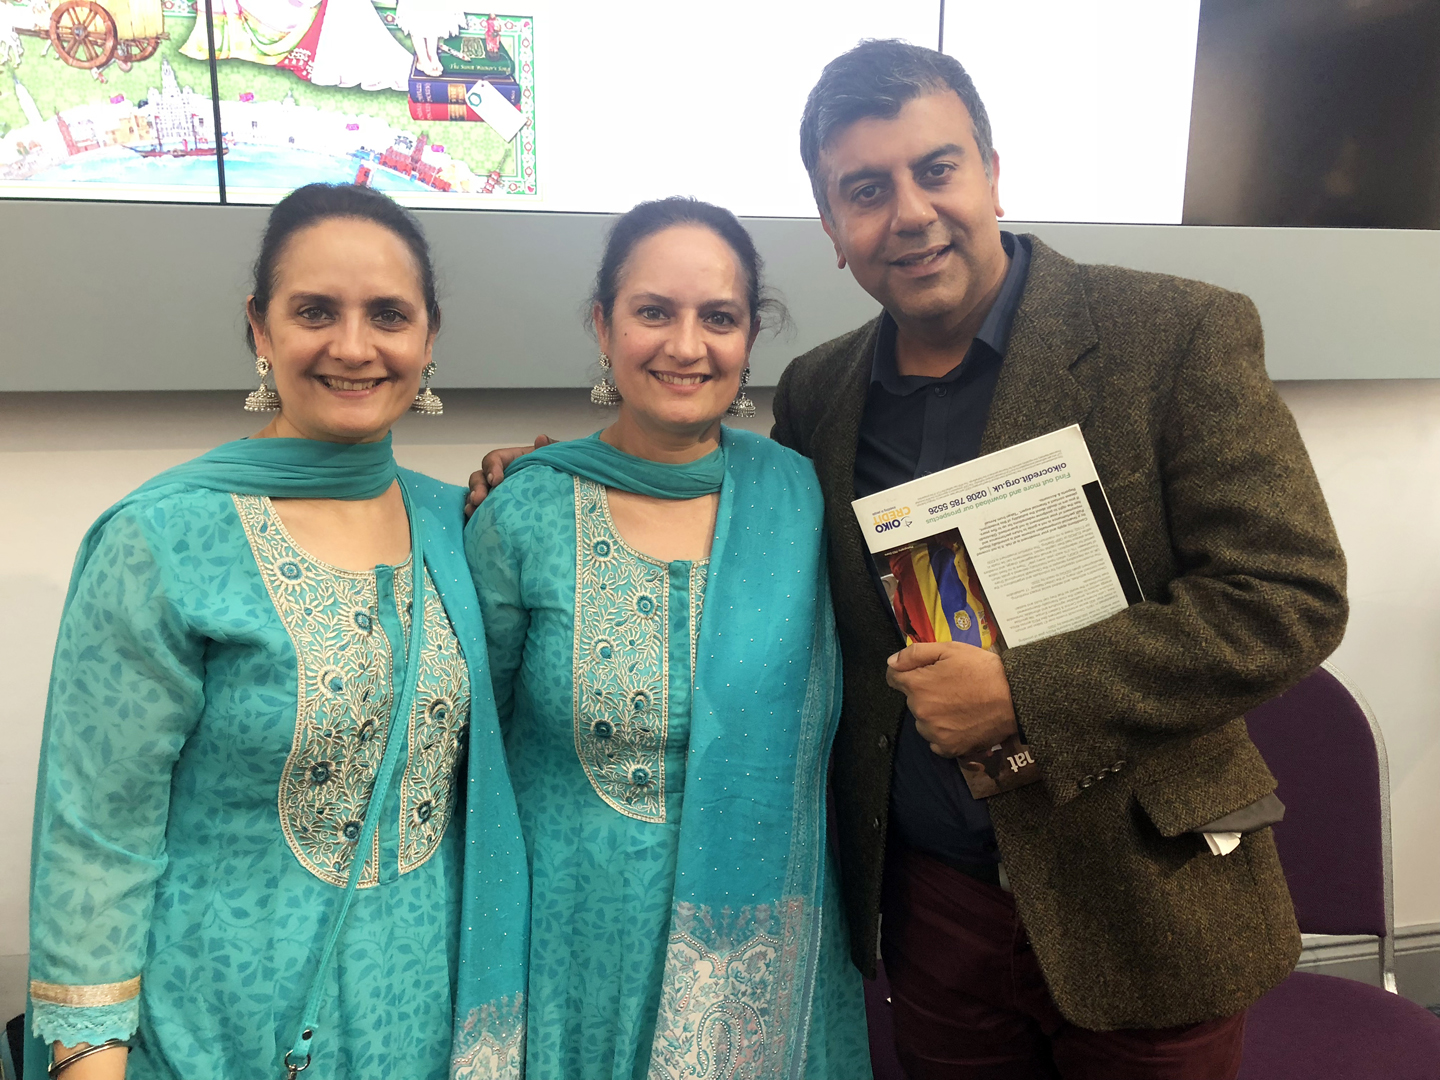 BCVA director Anand Chhabra with artists Amrit and Rabindra 'The Singh Twins' @ W-ton Gallery.